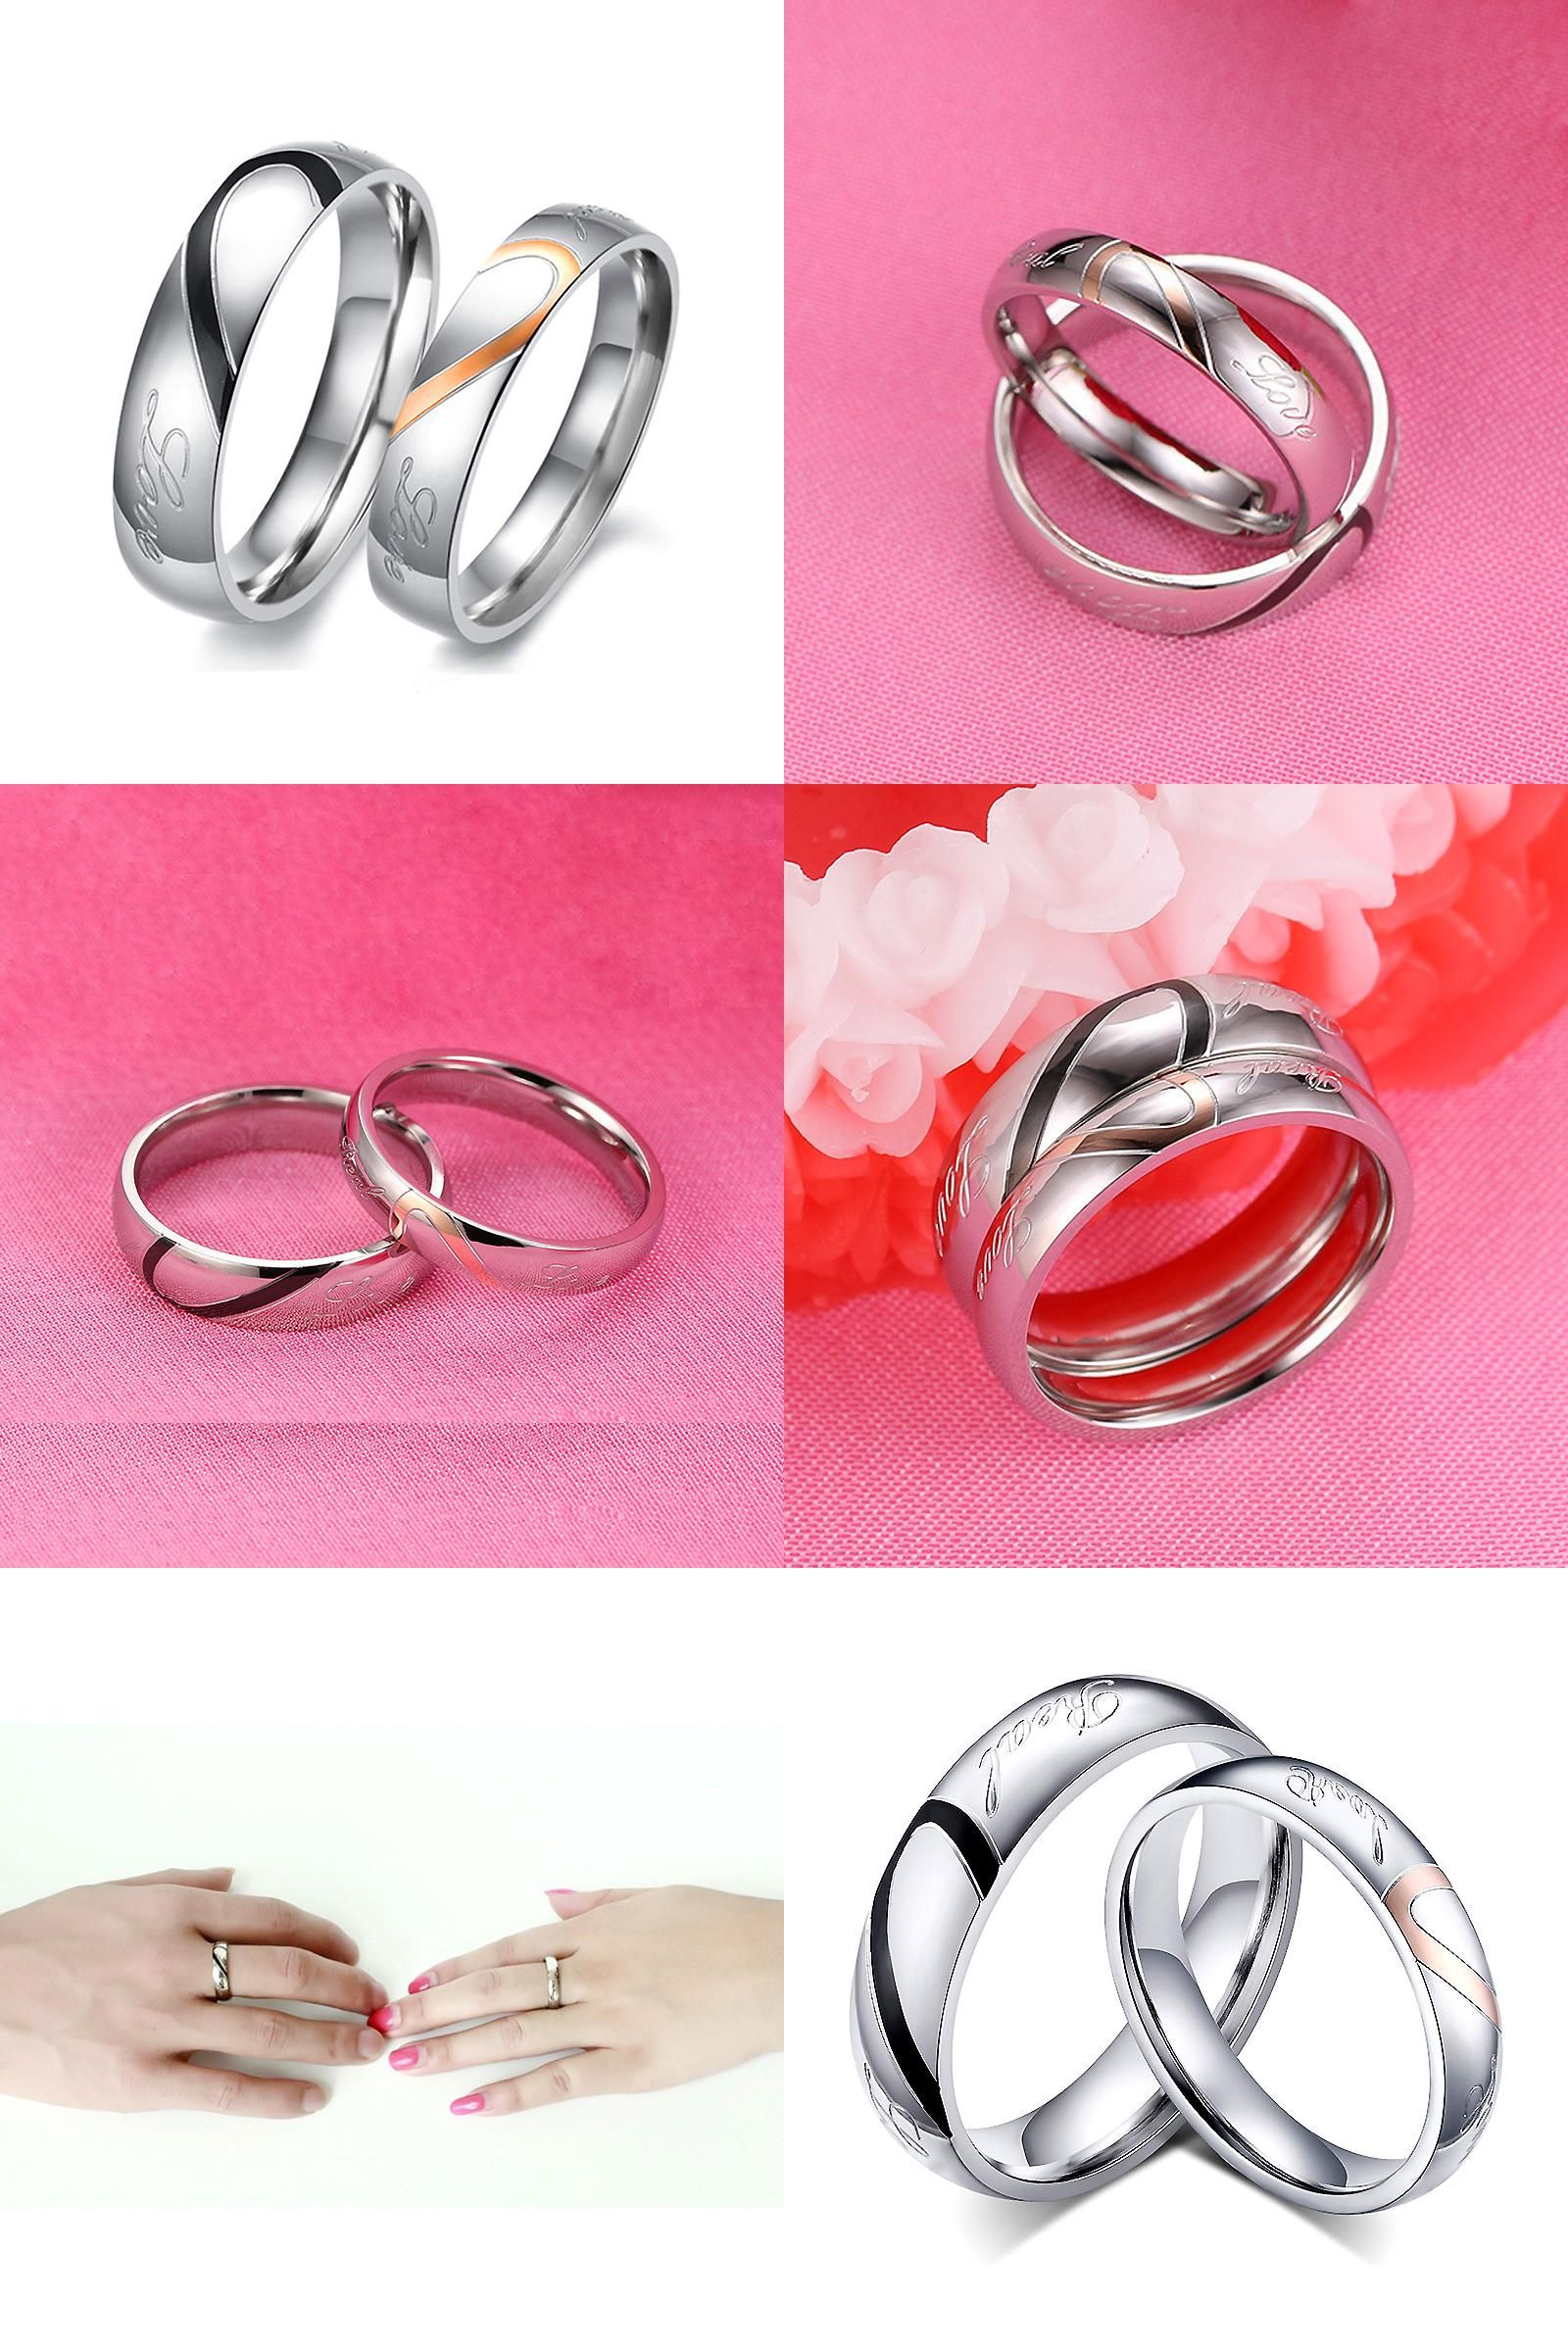 Visit to Buy] JEXXI 2016 Wholesale 925 Sterling Silver Double Rings ...